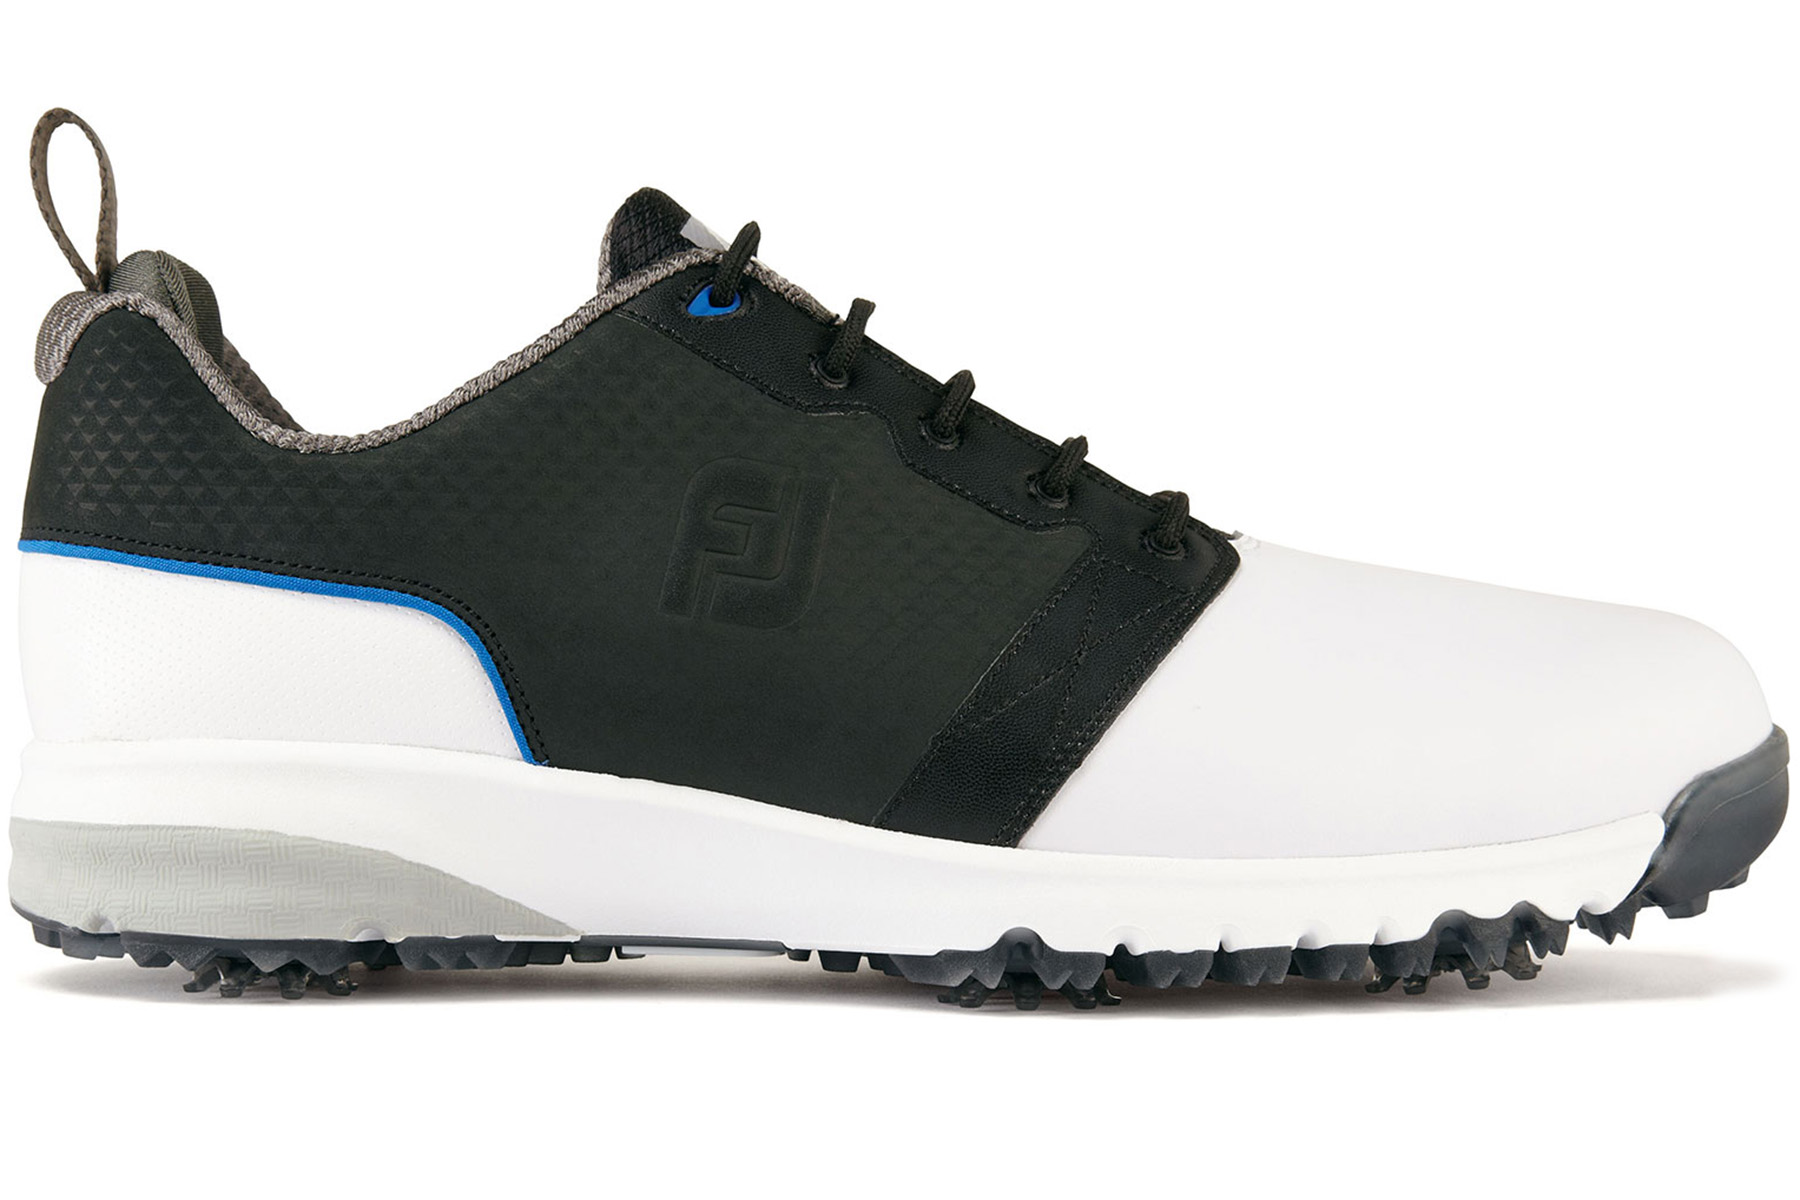 Footjoy Contour Shoes Uk